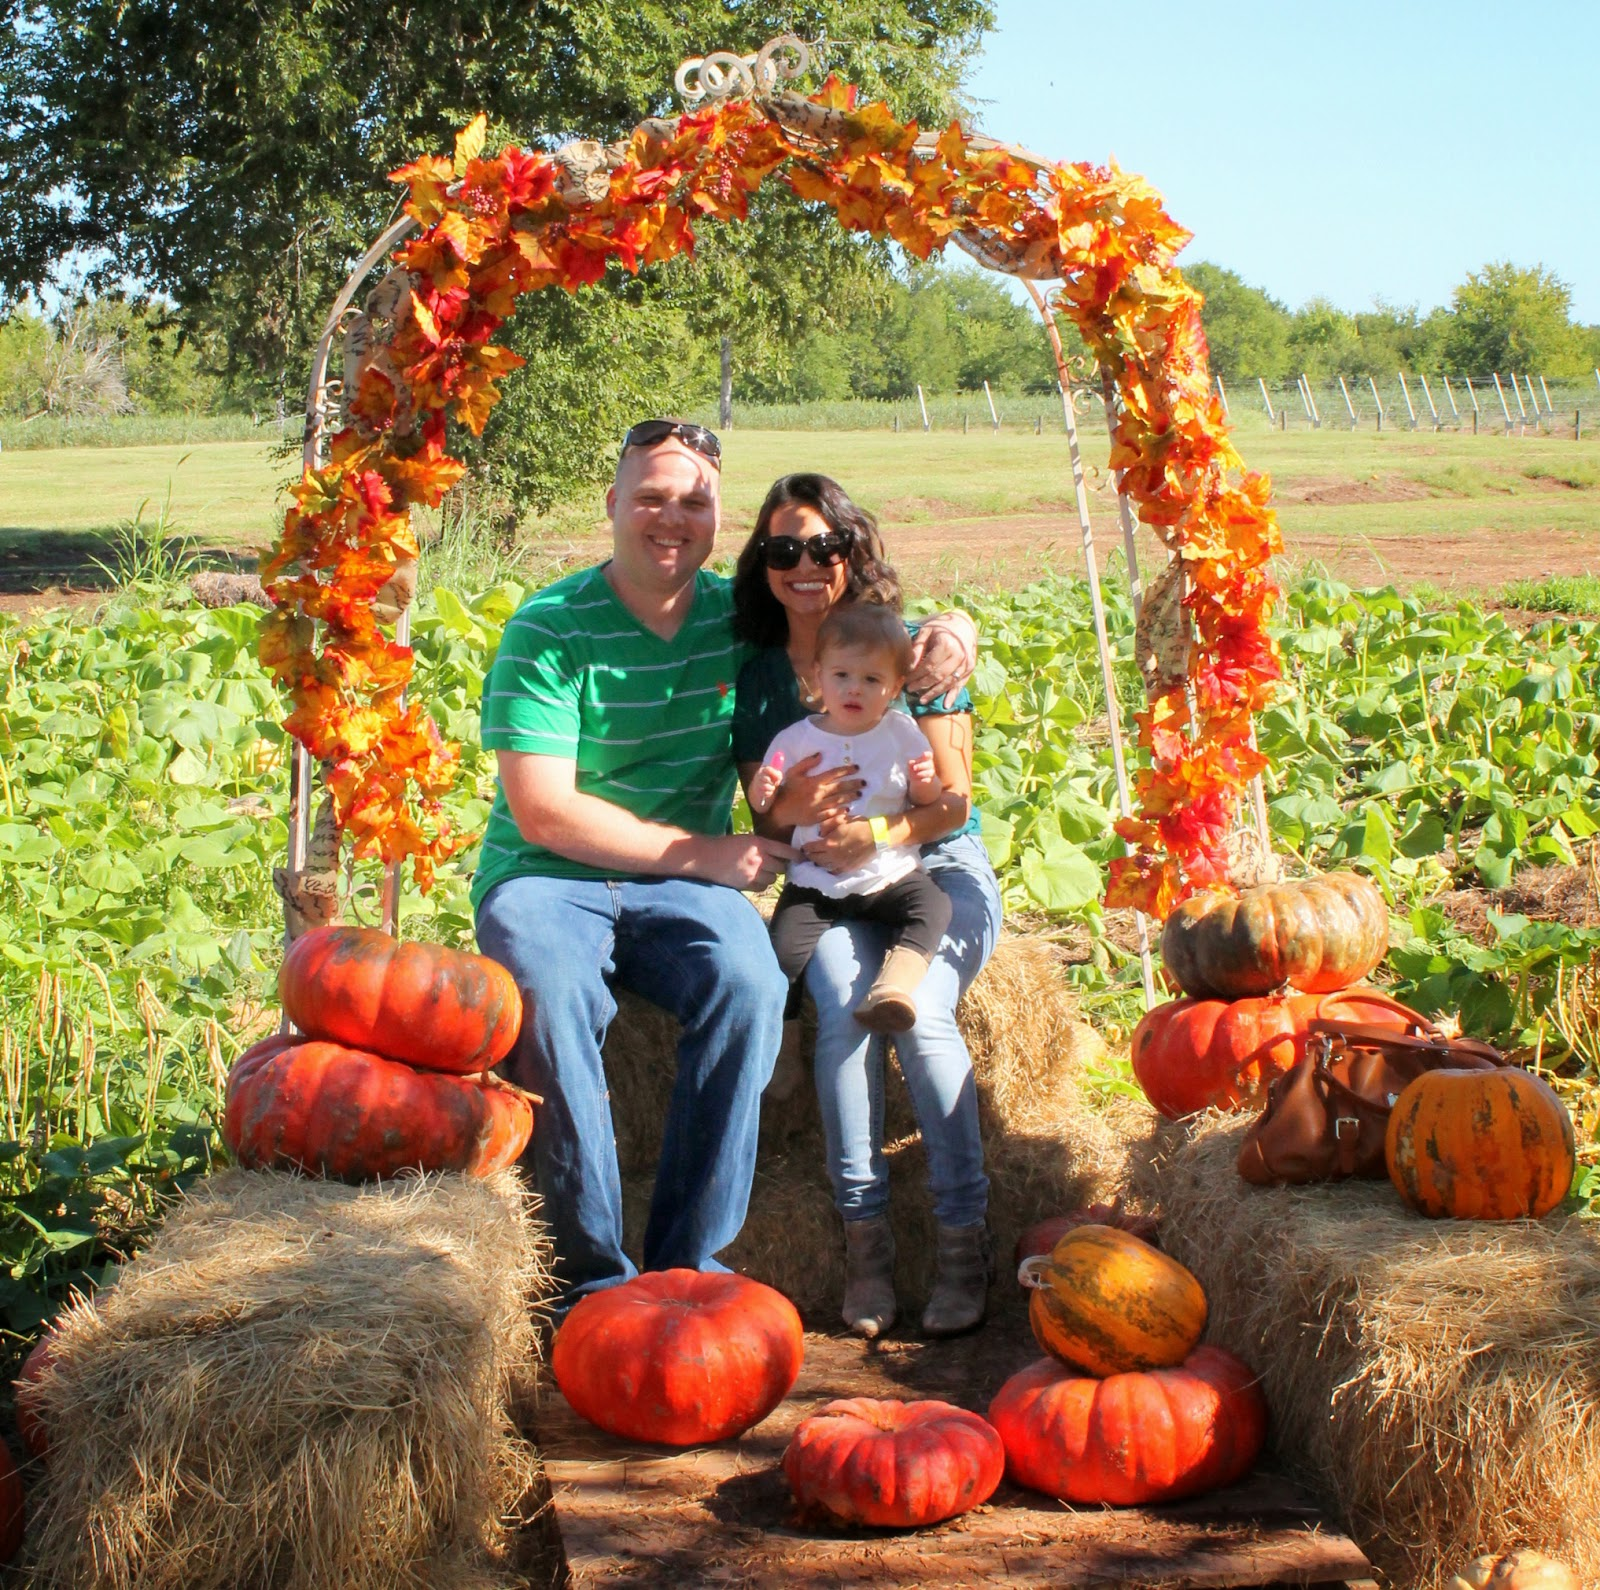 Pumpkin patch family photo | Bubbles and Gold (www.bubblesandgold.com)